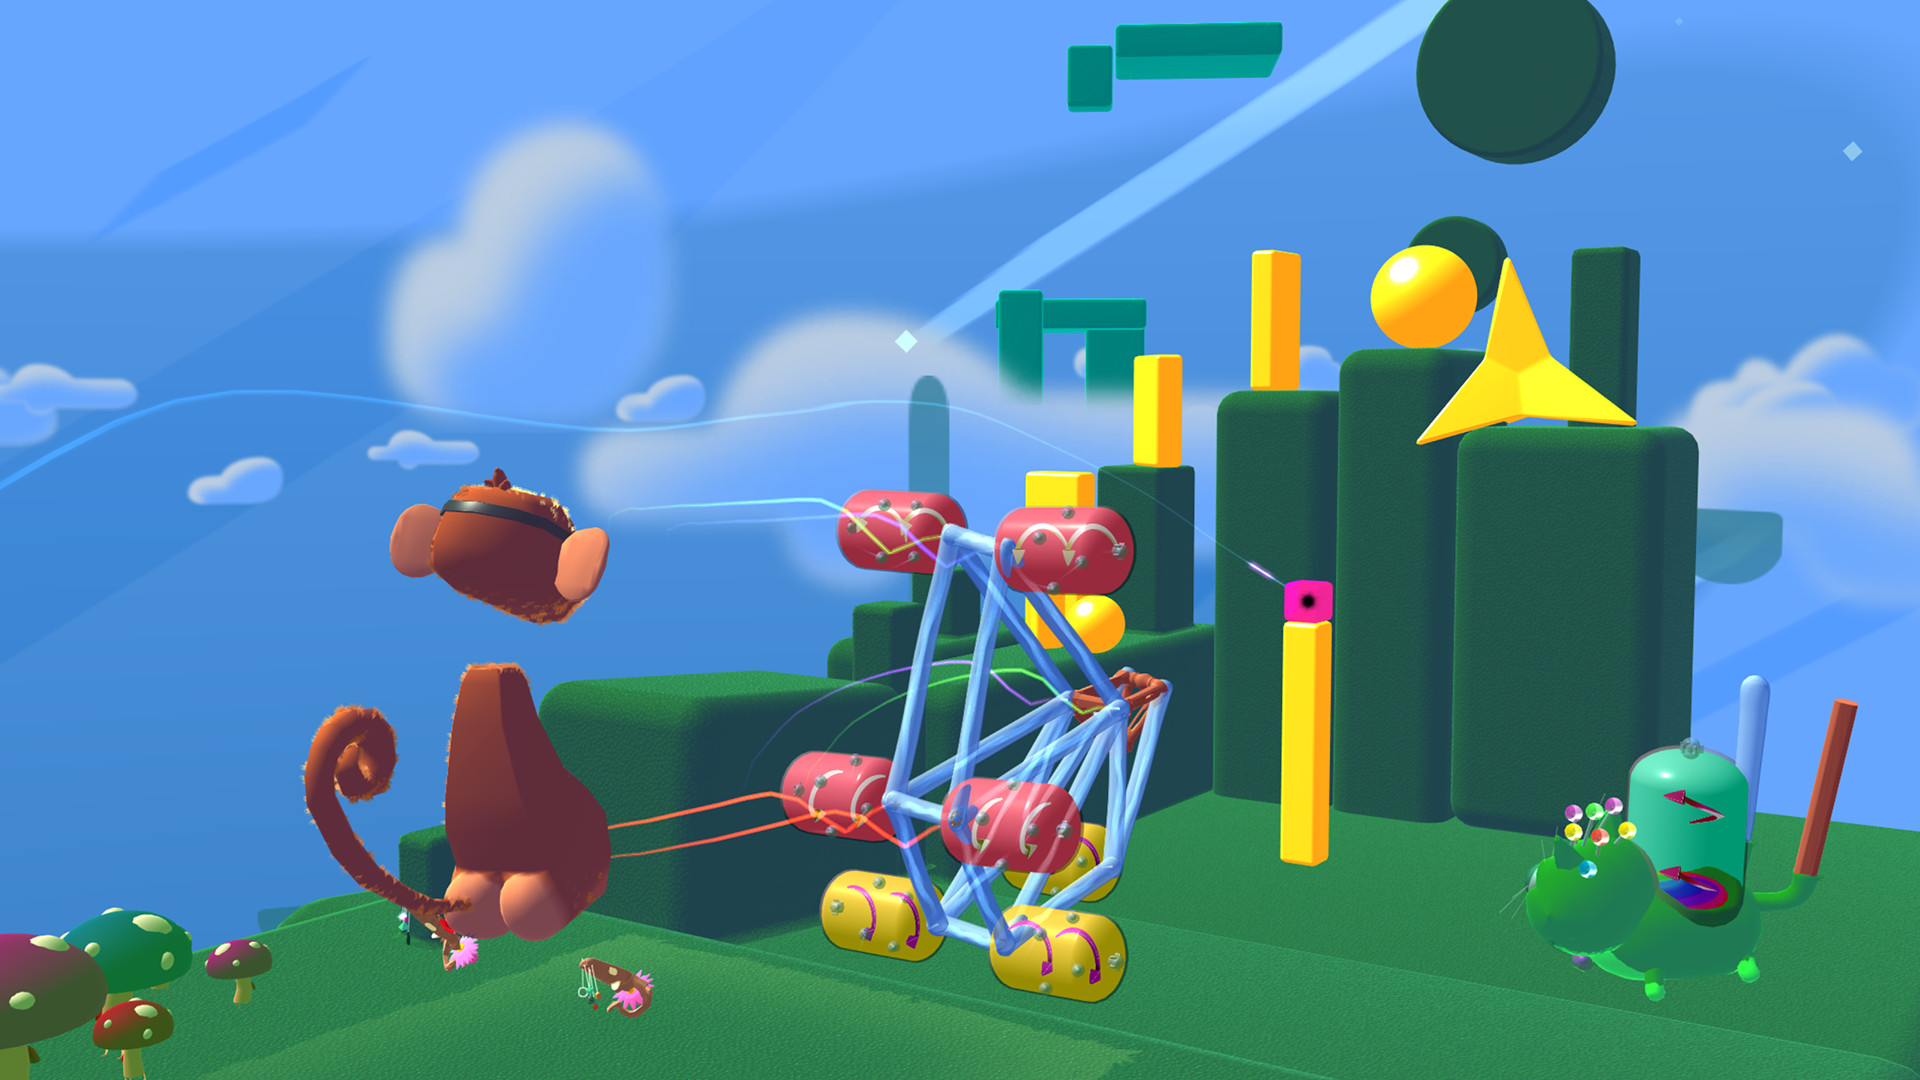 fantastic contraption vr video game wallpaper 68008